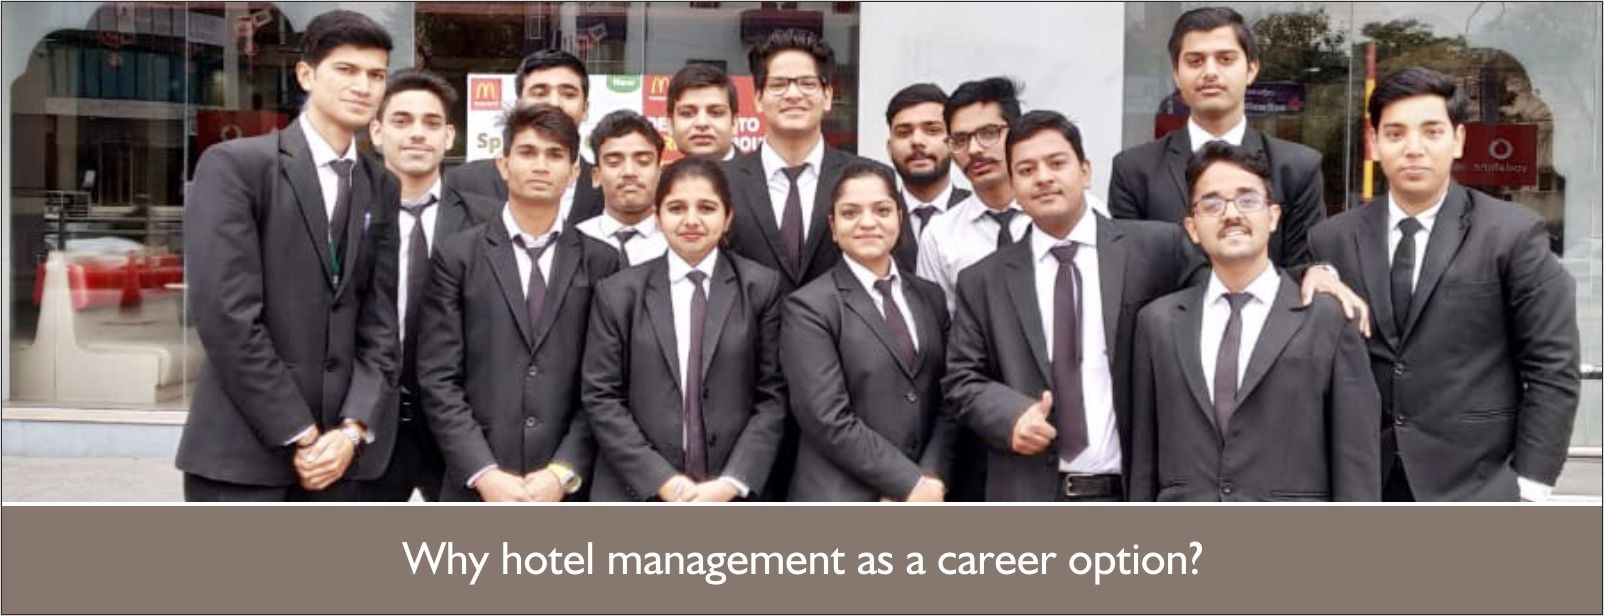 Why hospitality industry as a career option?